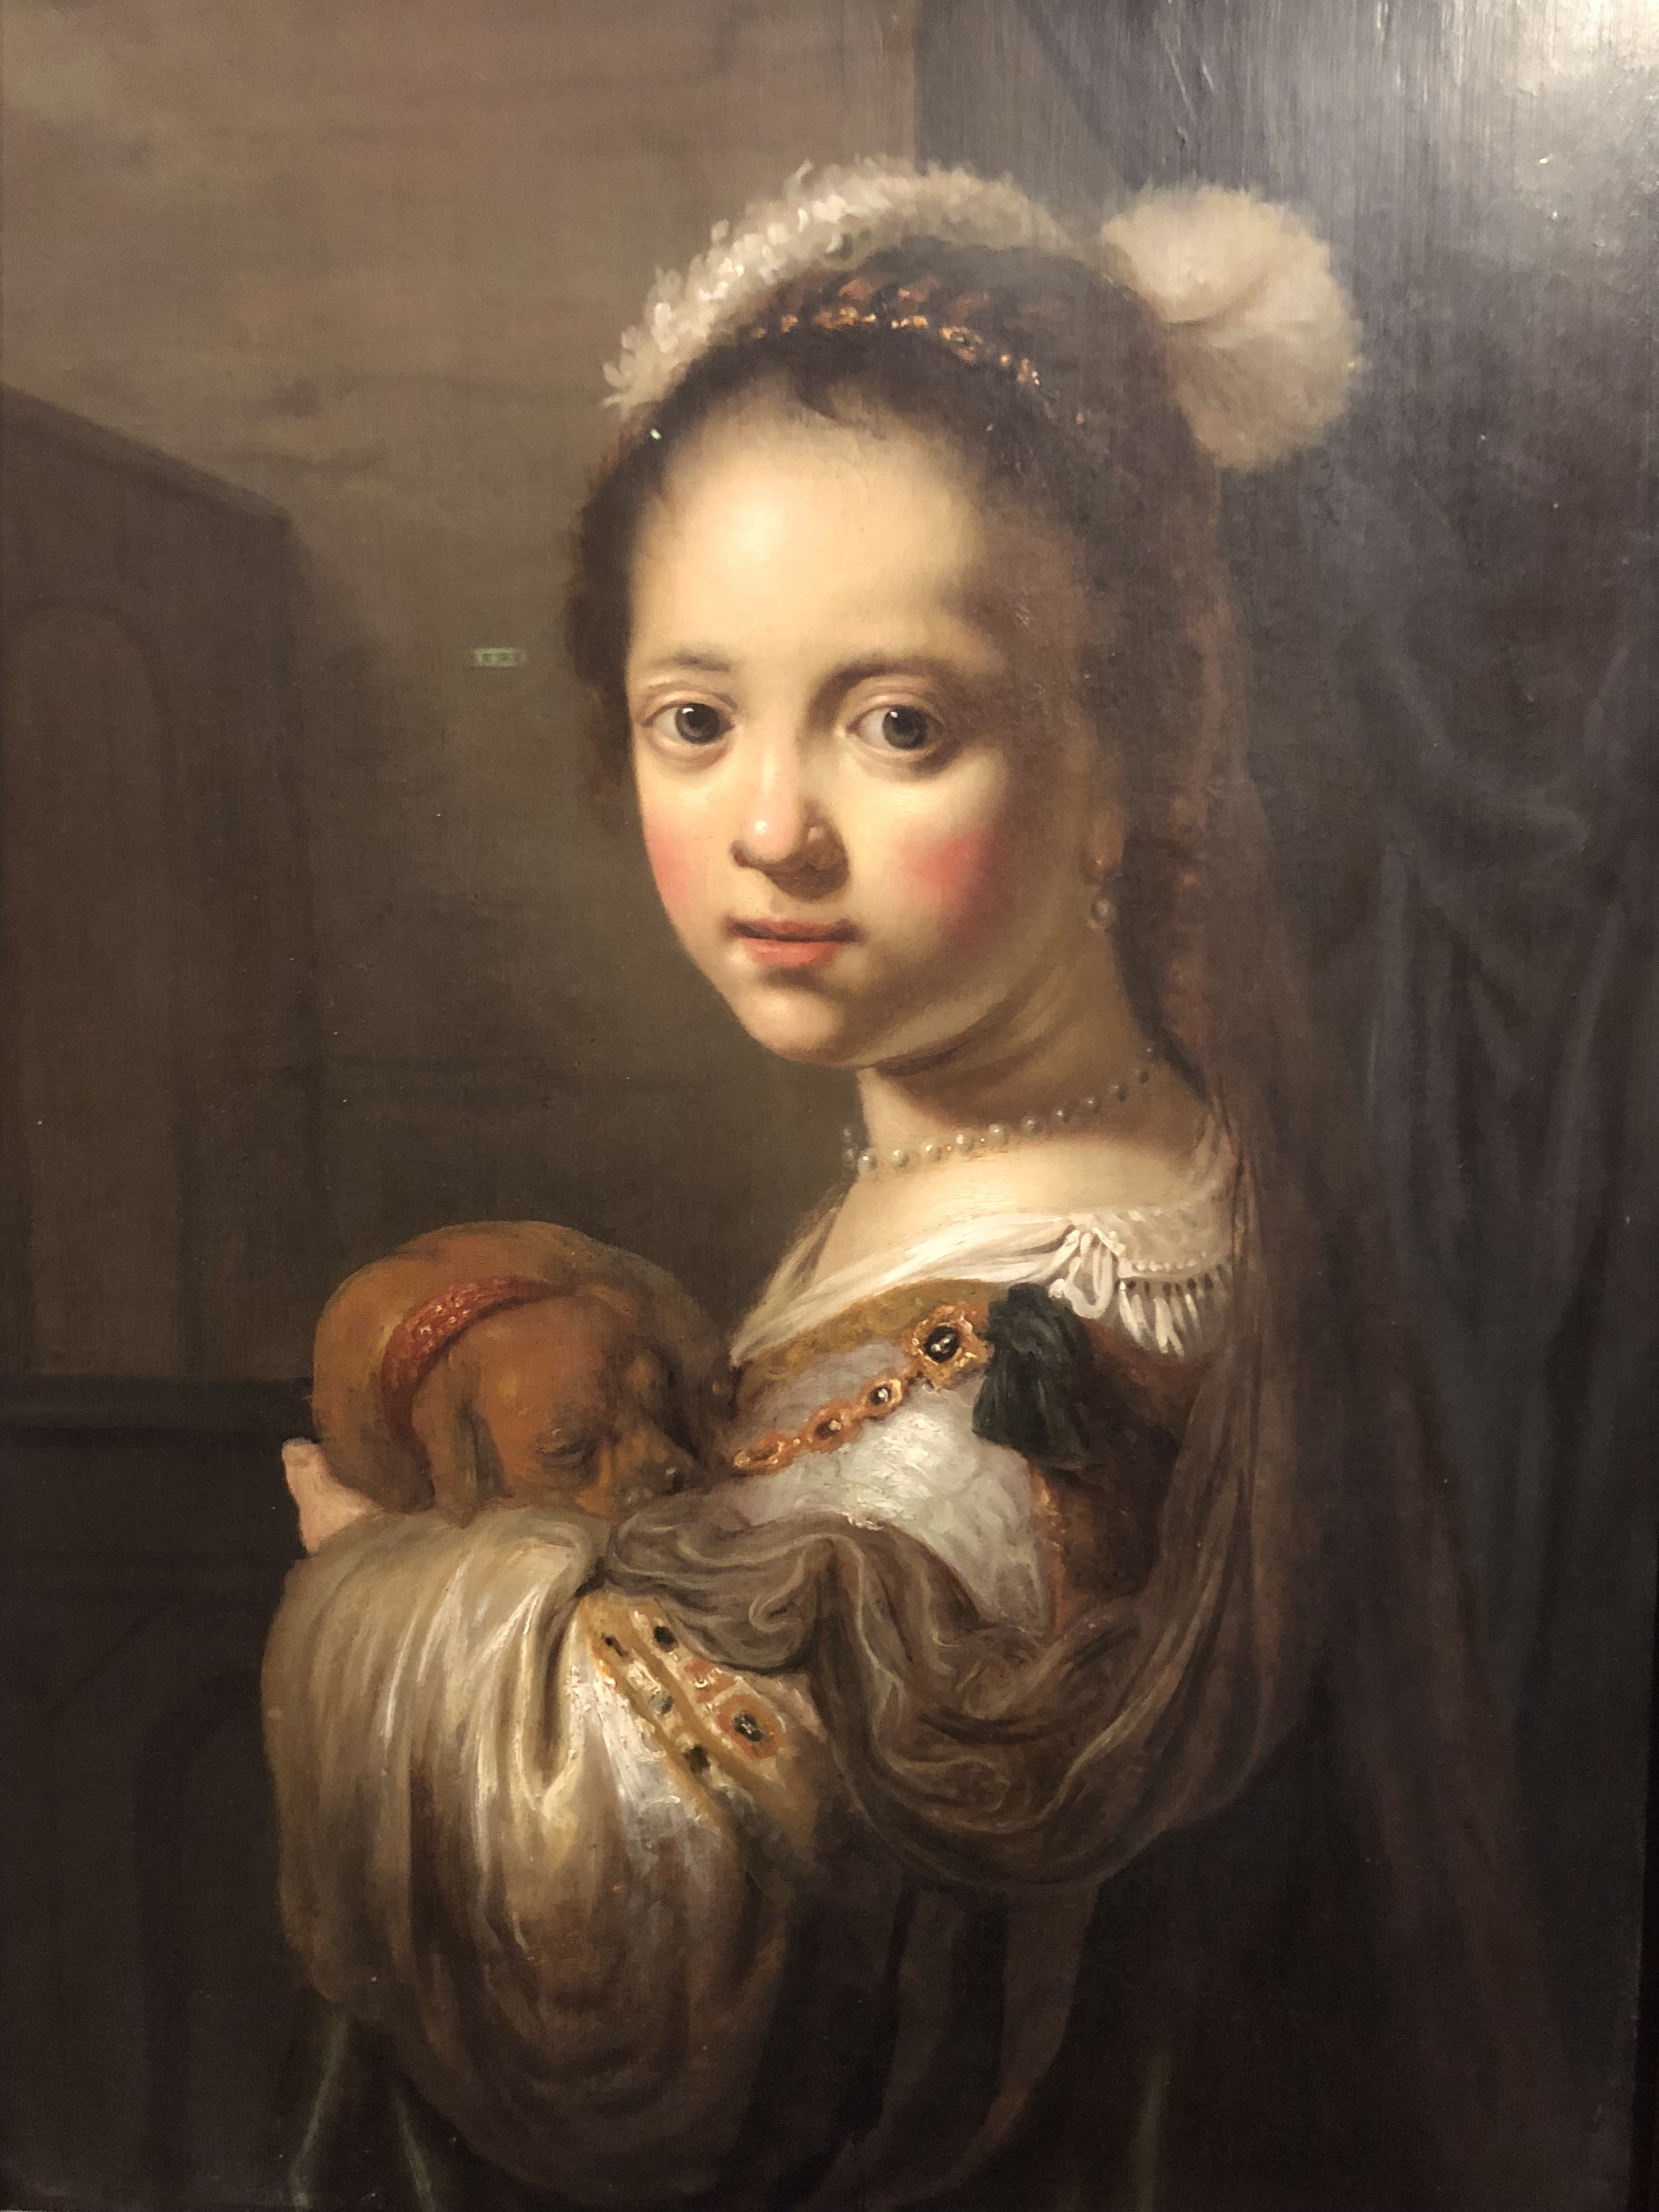 Govert Flinck – Child portrait drawing class in Kunsthaus